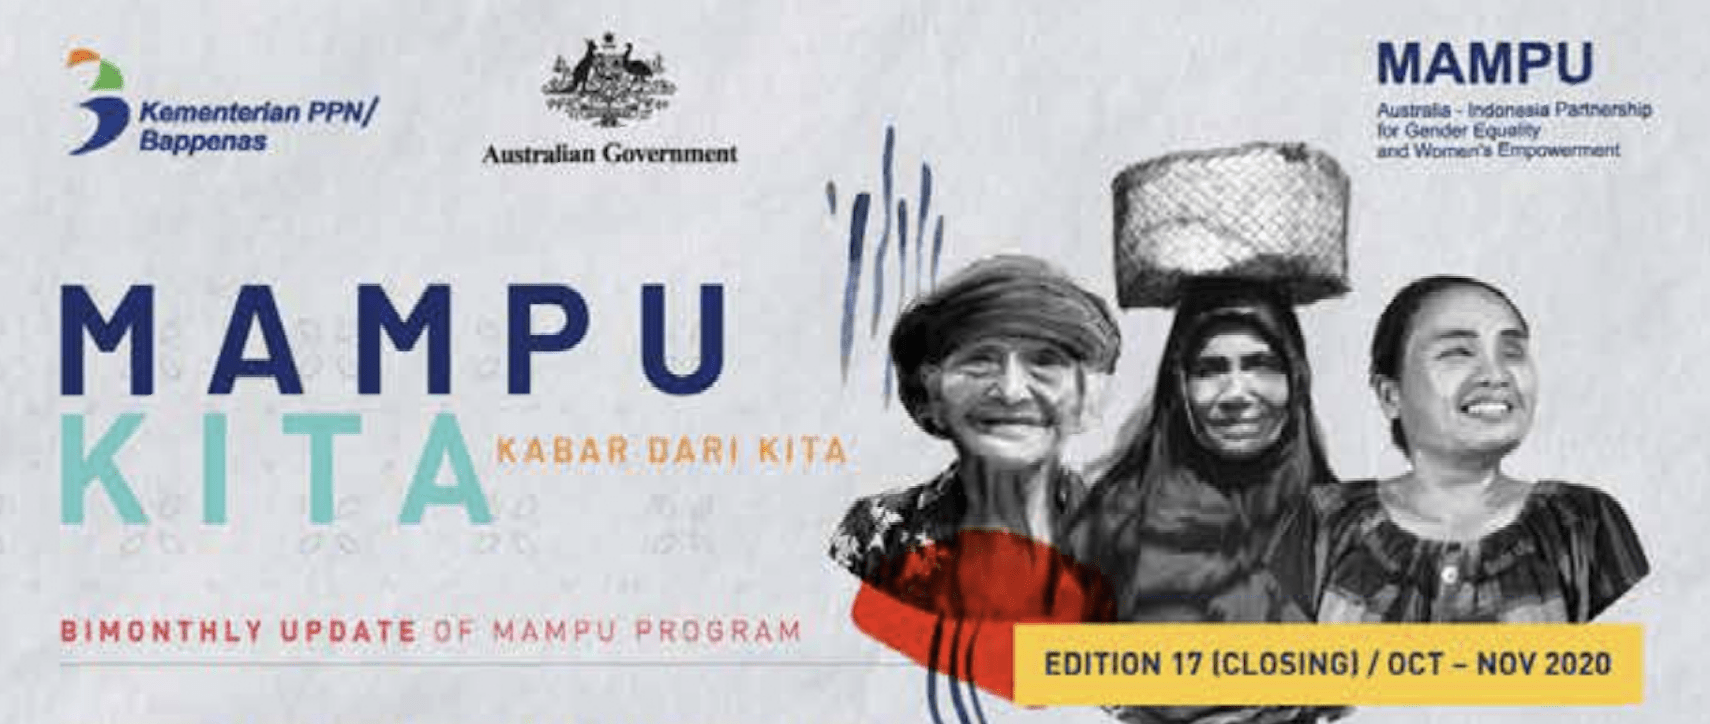 Projects in Action – Bimonthly Update (Edition 17): Australia-Indonesia Partnership for Gender Equality and Women's Empowerment (MAMPU)